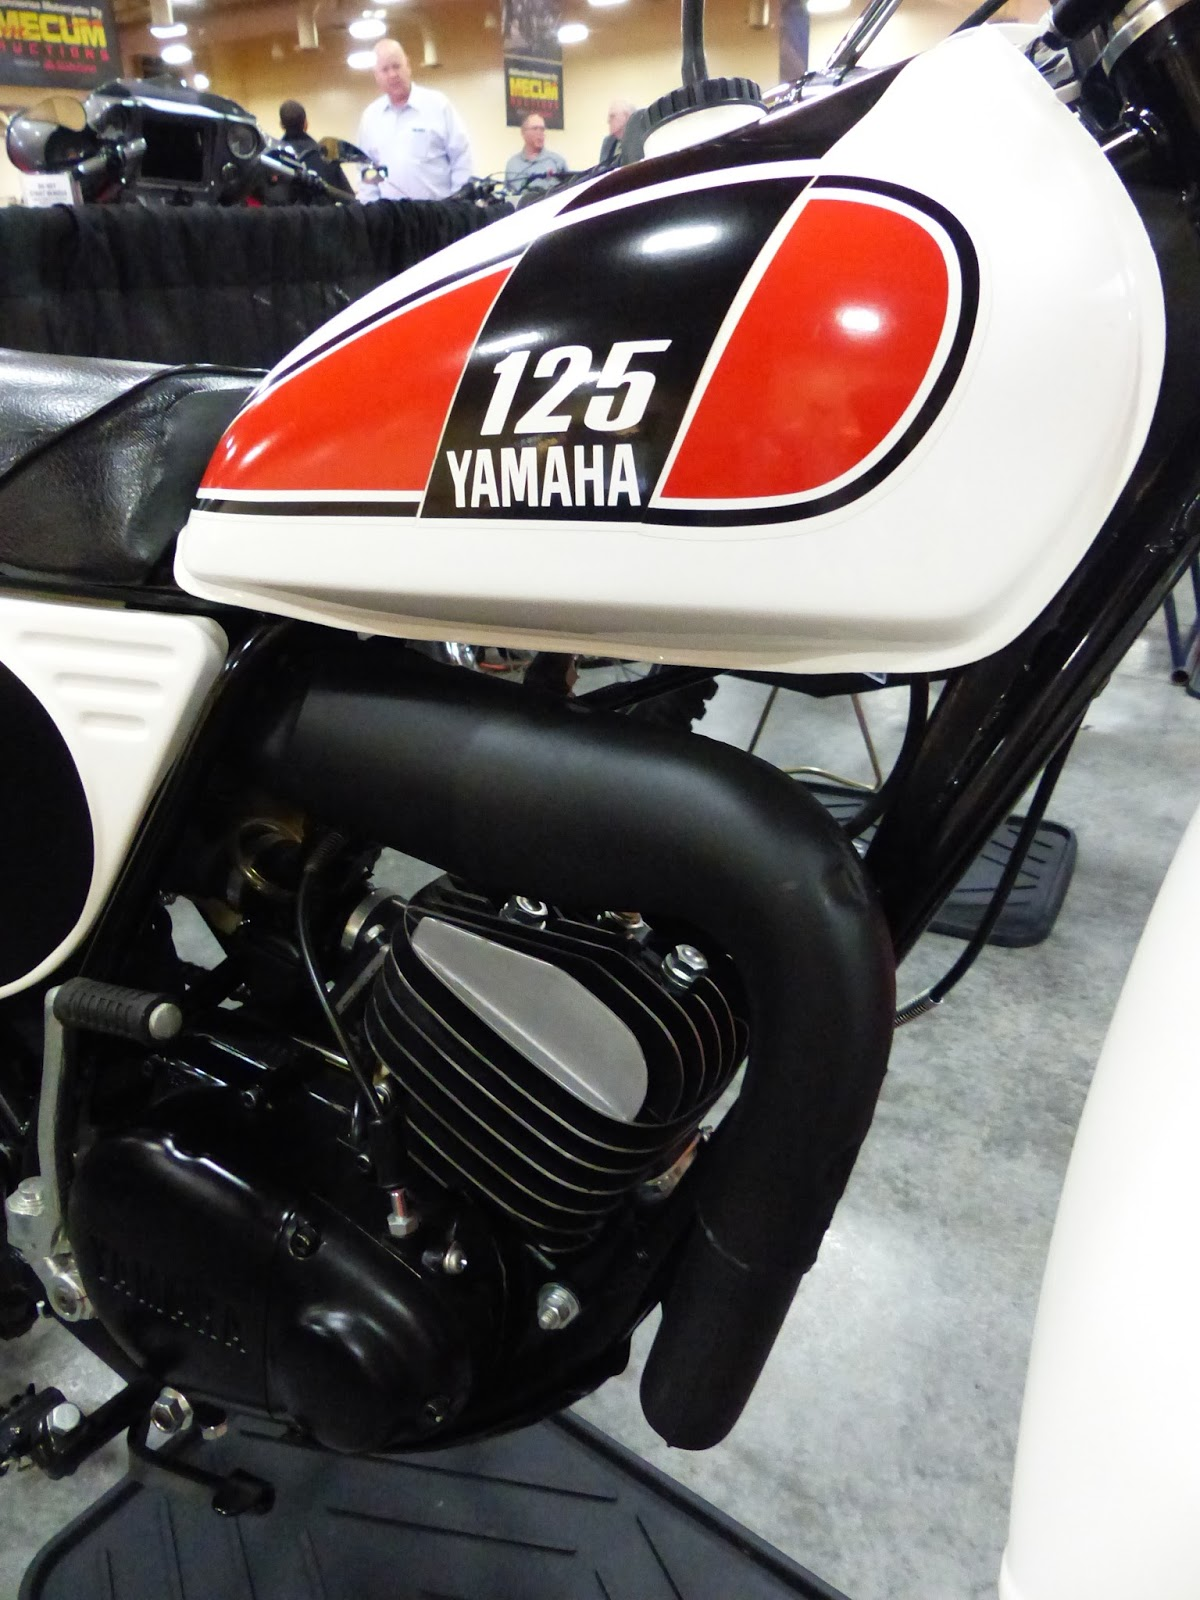 1975 yamaha mx125 sold for 5 000 at the 2016 mecum las vegas motorcycle auction